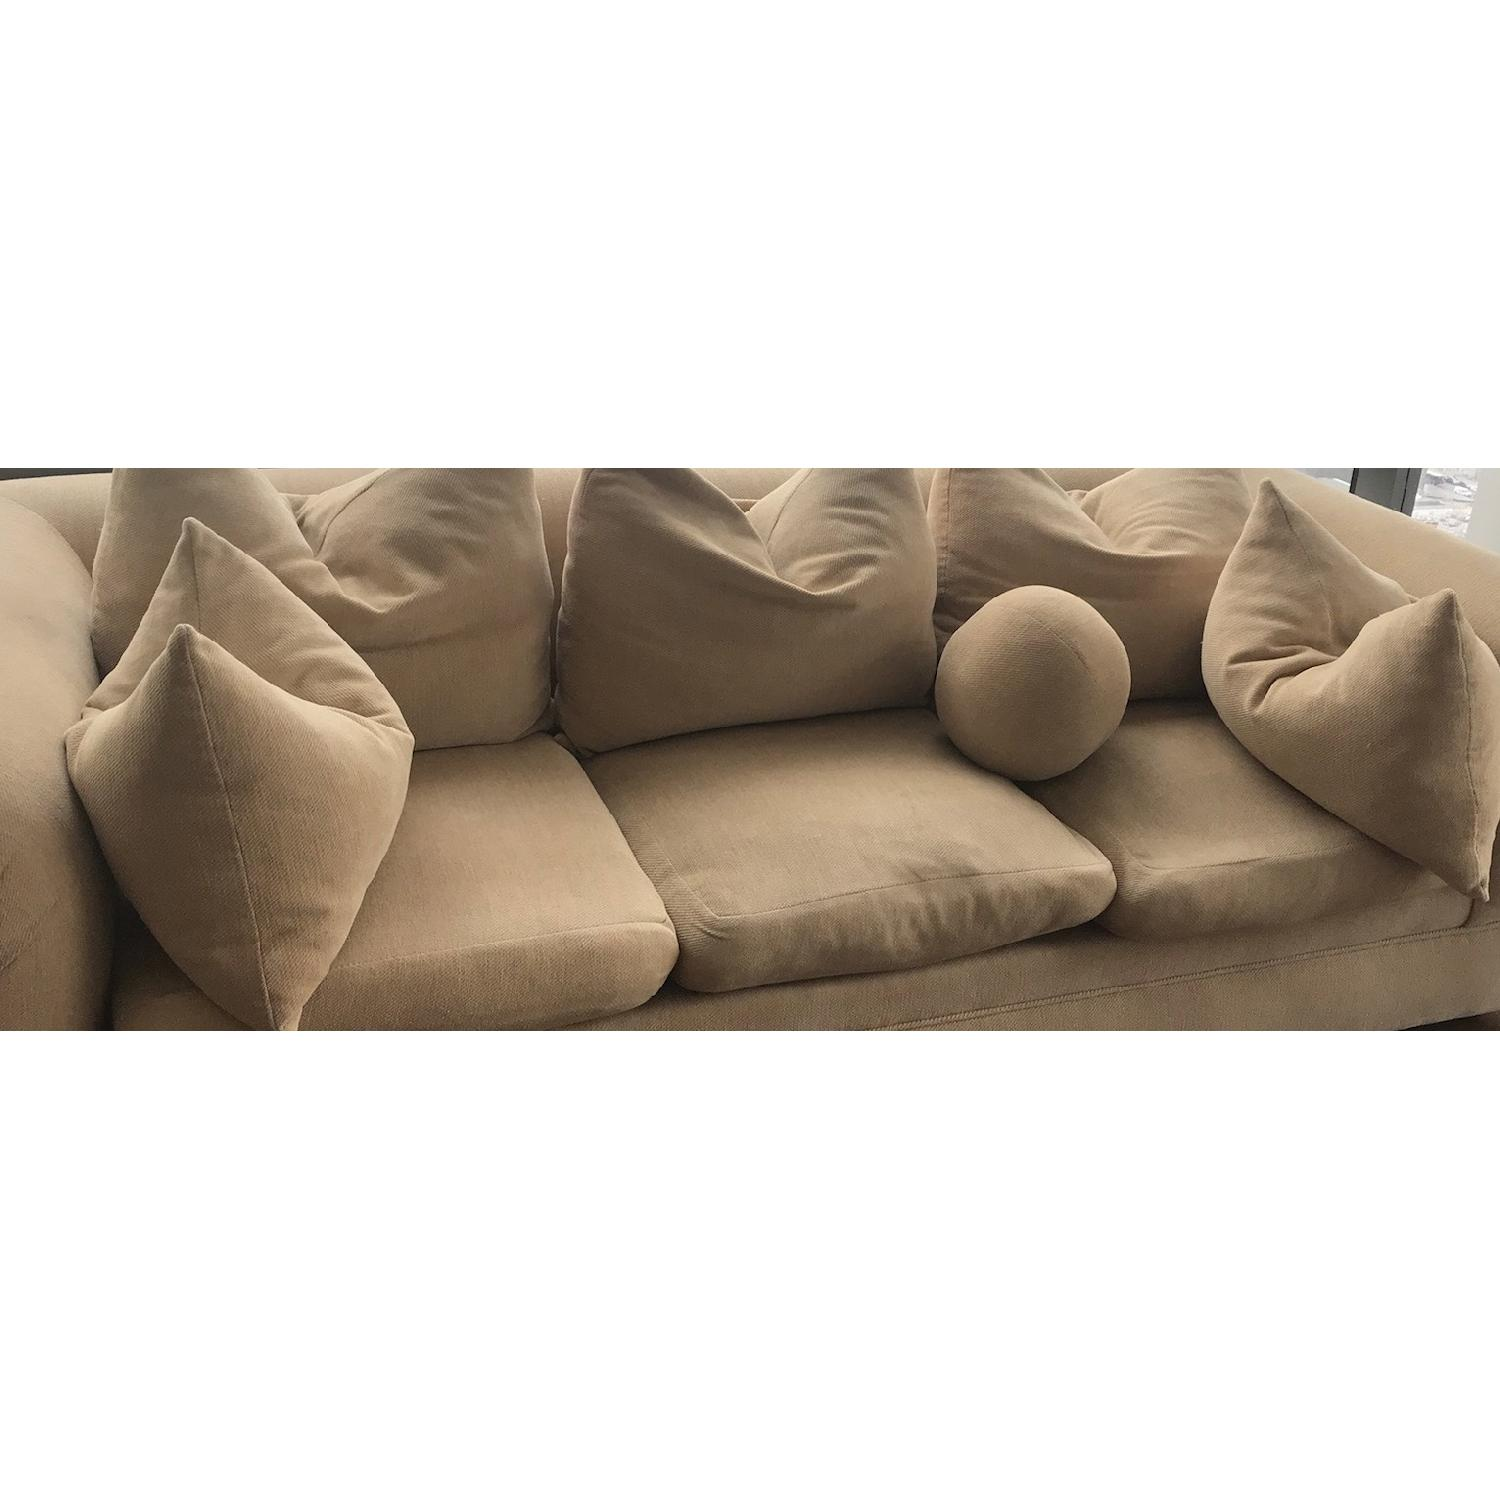 Kreiss Down Filled Sofa-2